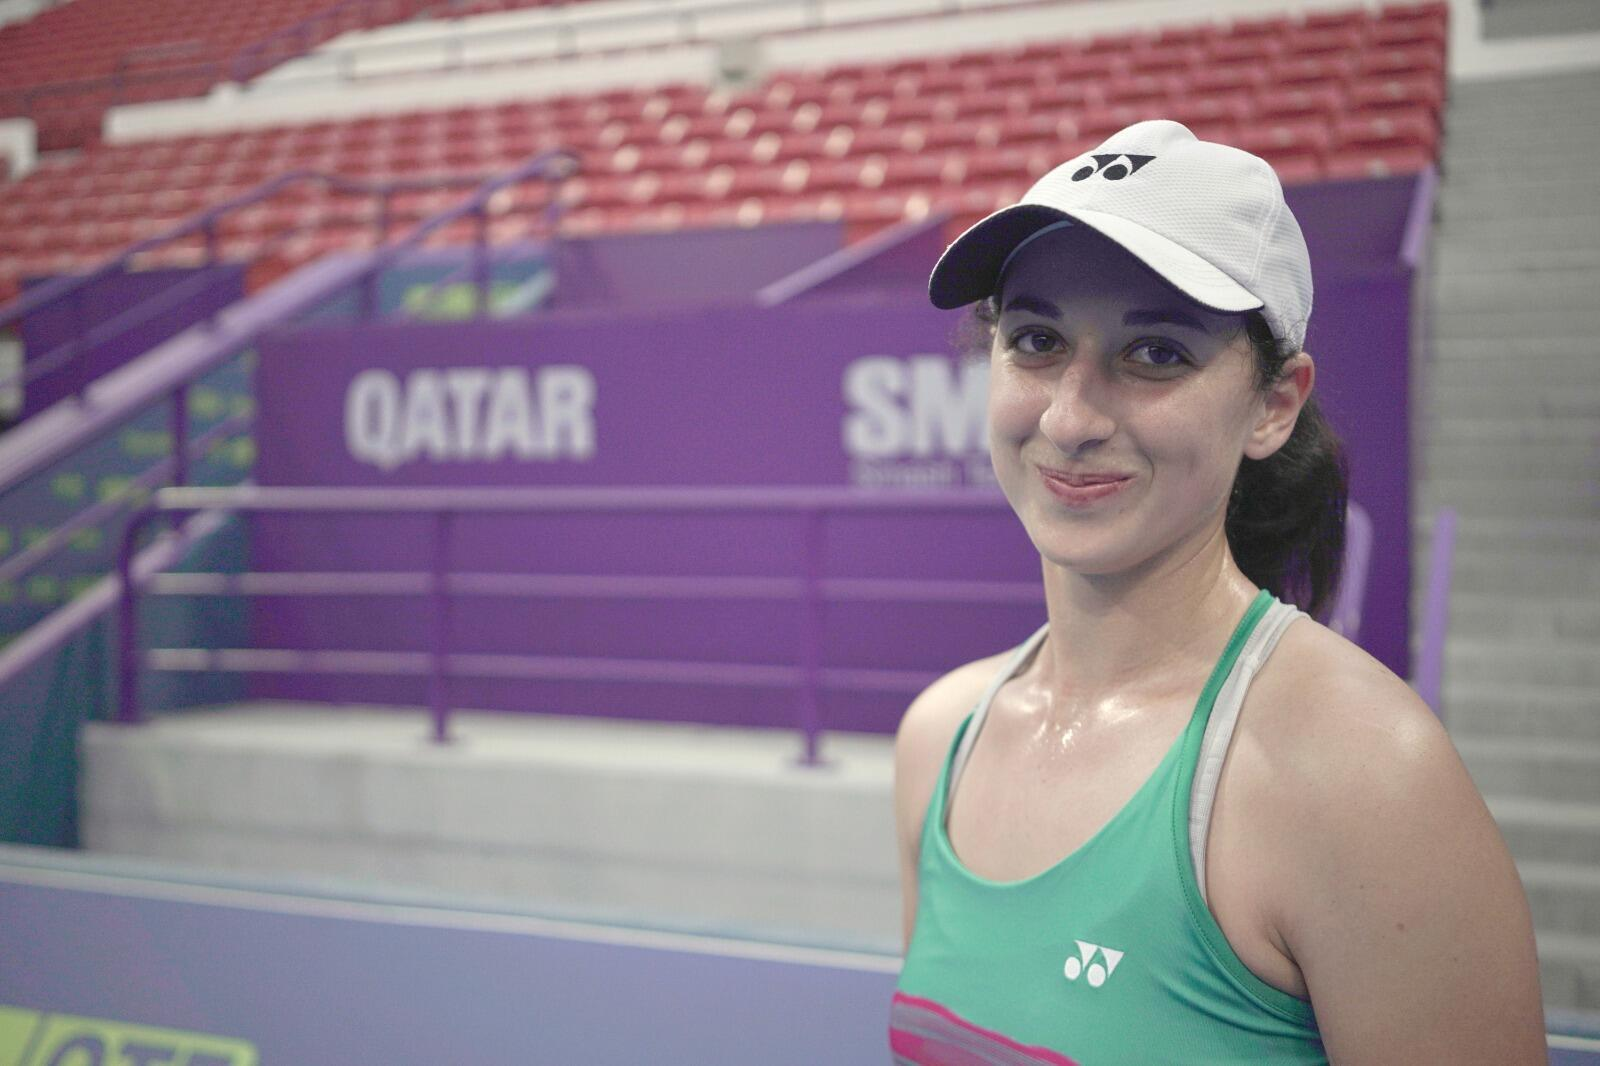 Algerian tennis player inès Ibbou at the Qatar Open in February 2019.